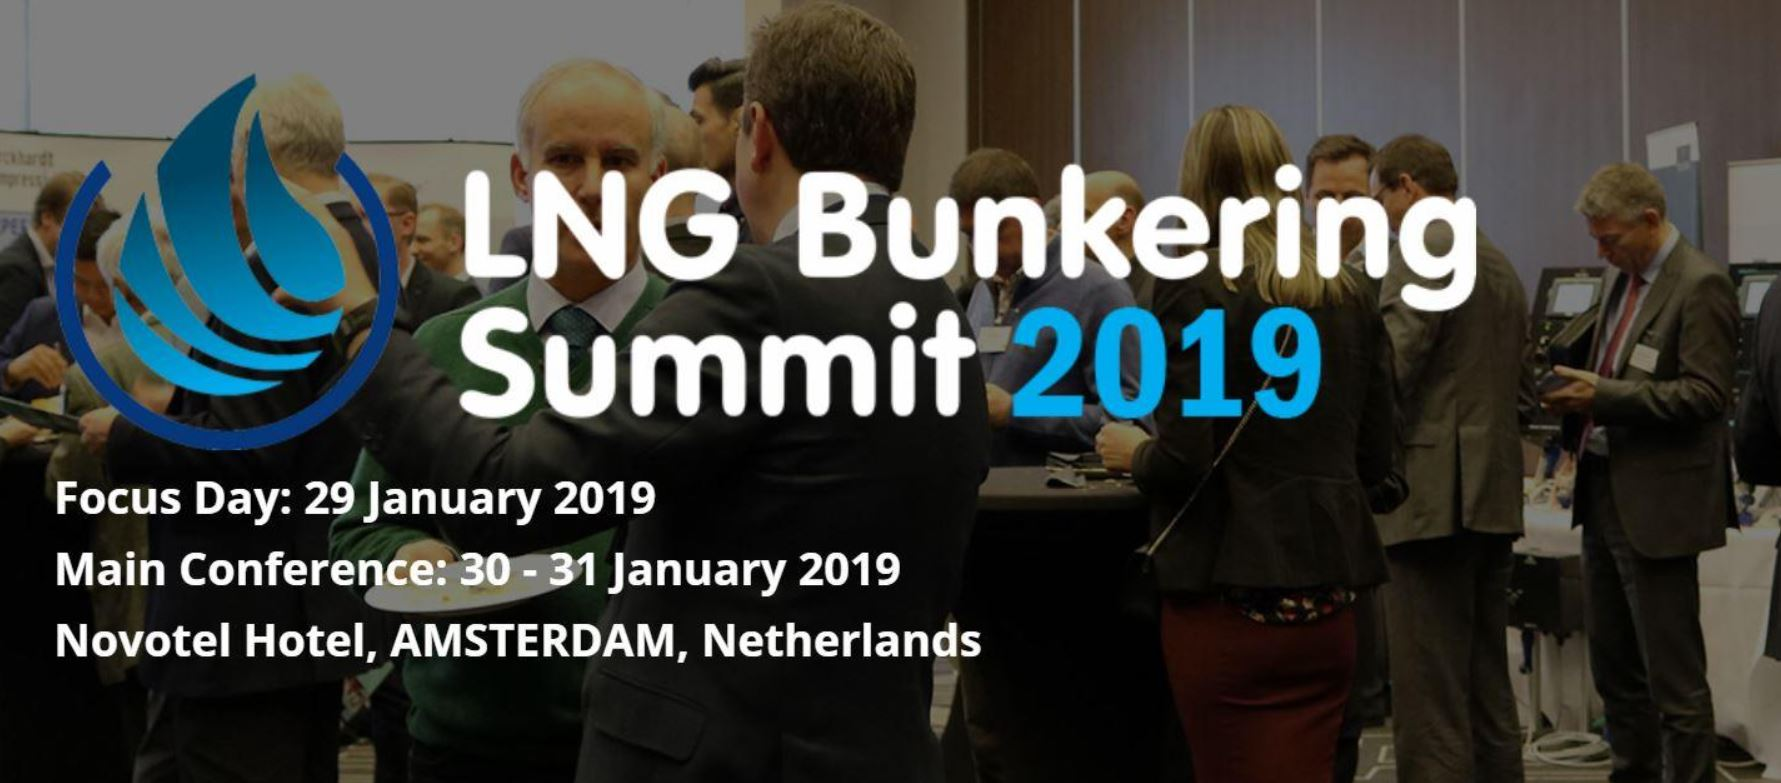 LNG Bunkering Summit 2019